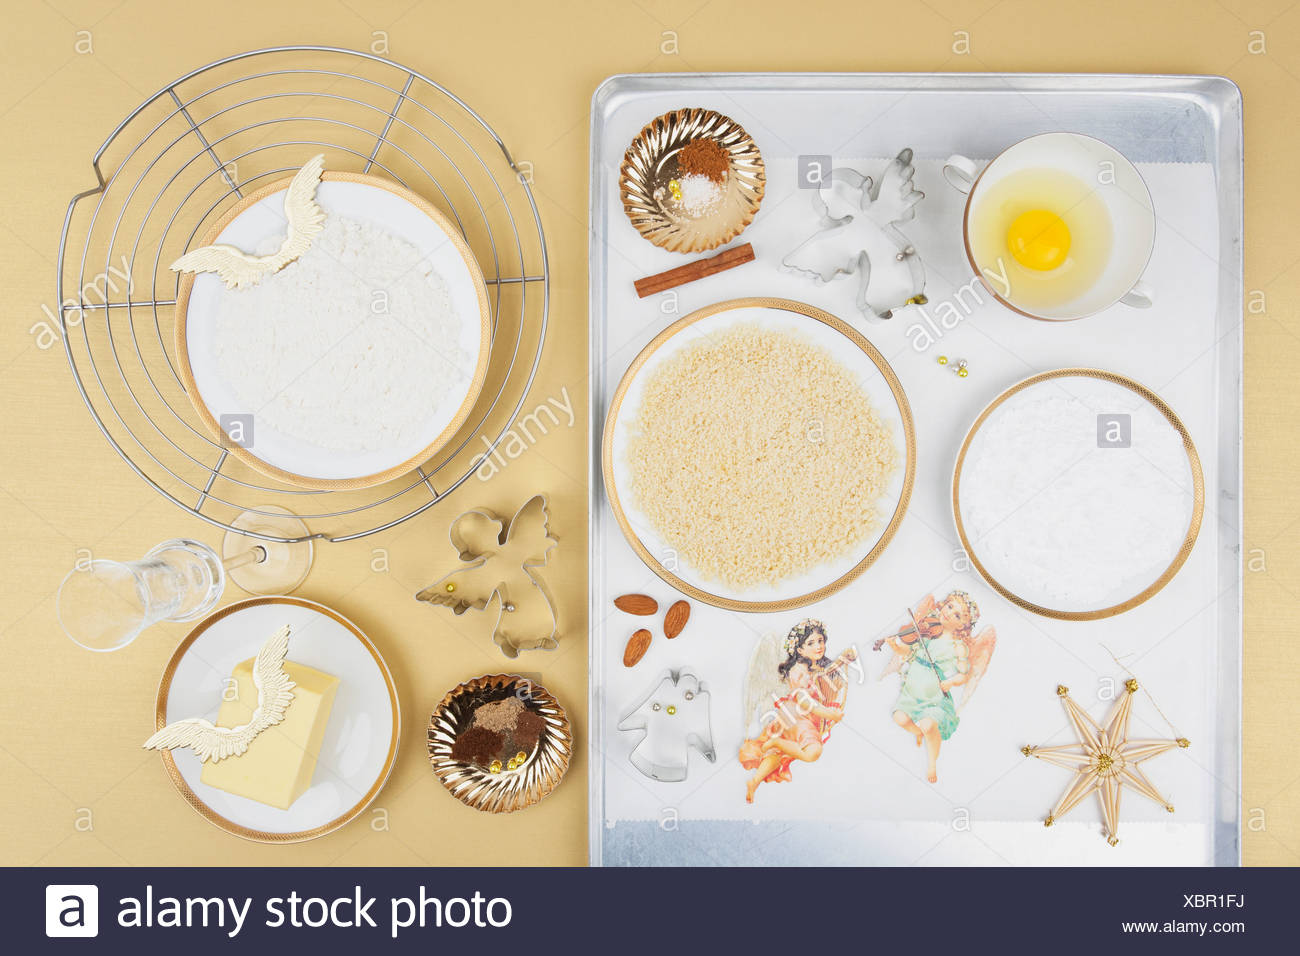 Ingredients For Christmas Angel Cookies Stock Photo 282633222 Alamy